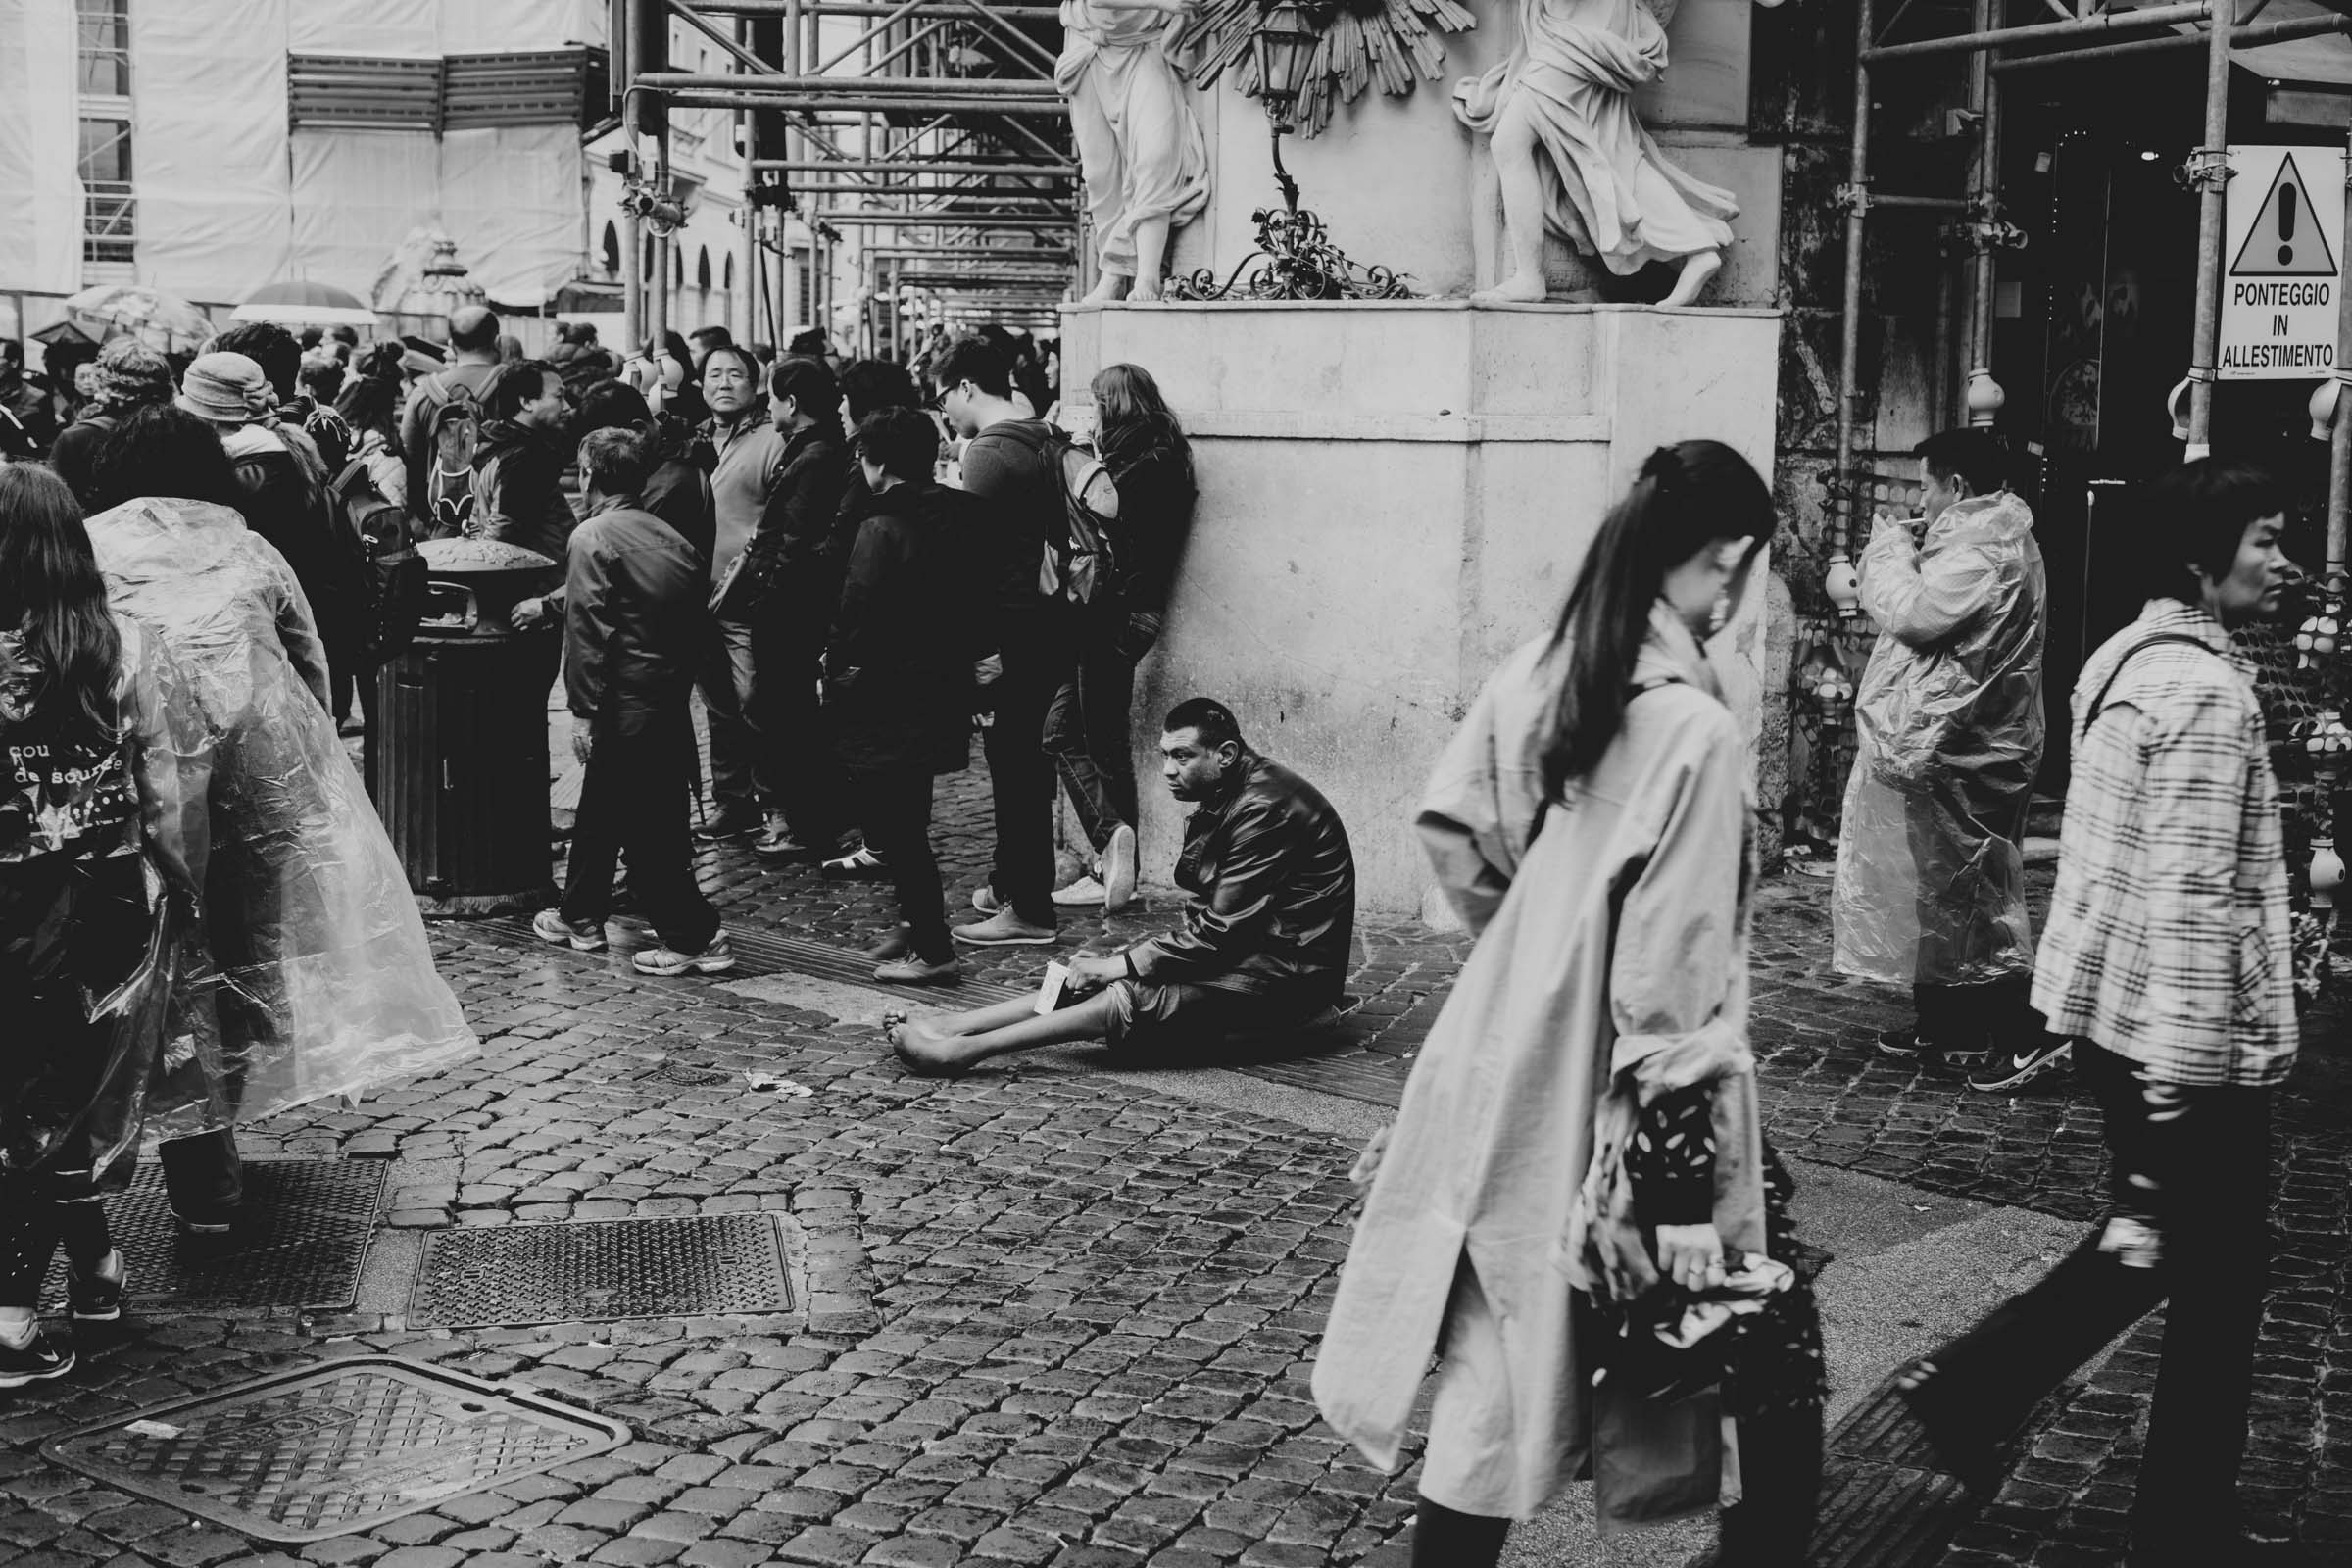 ABOVE:A man begging on the streets near the Trevi Fountain. I'd been warned that many homeless resolve to faking disabilities or injuries in the hopes to evoke sympathy and thus earning some extra money.